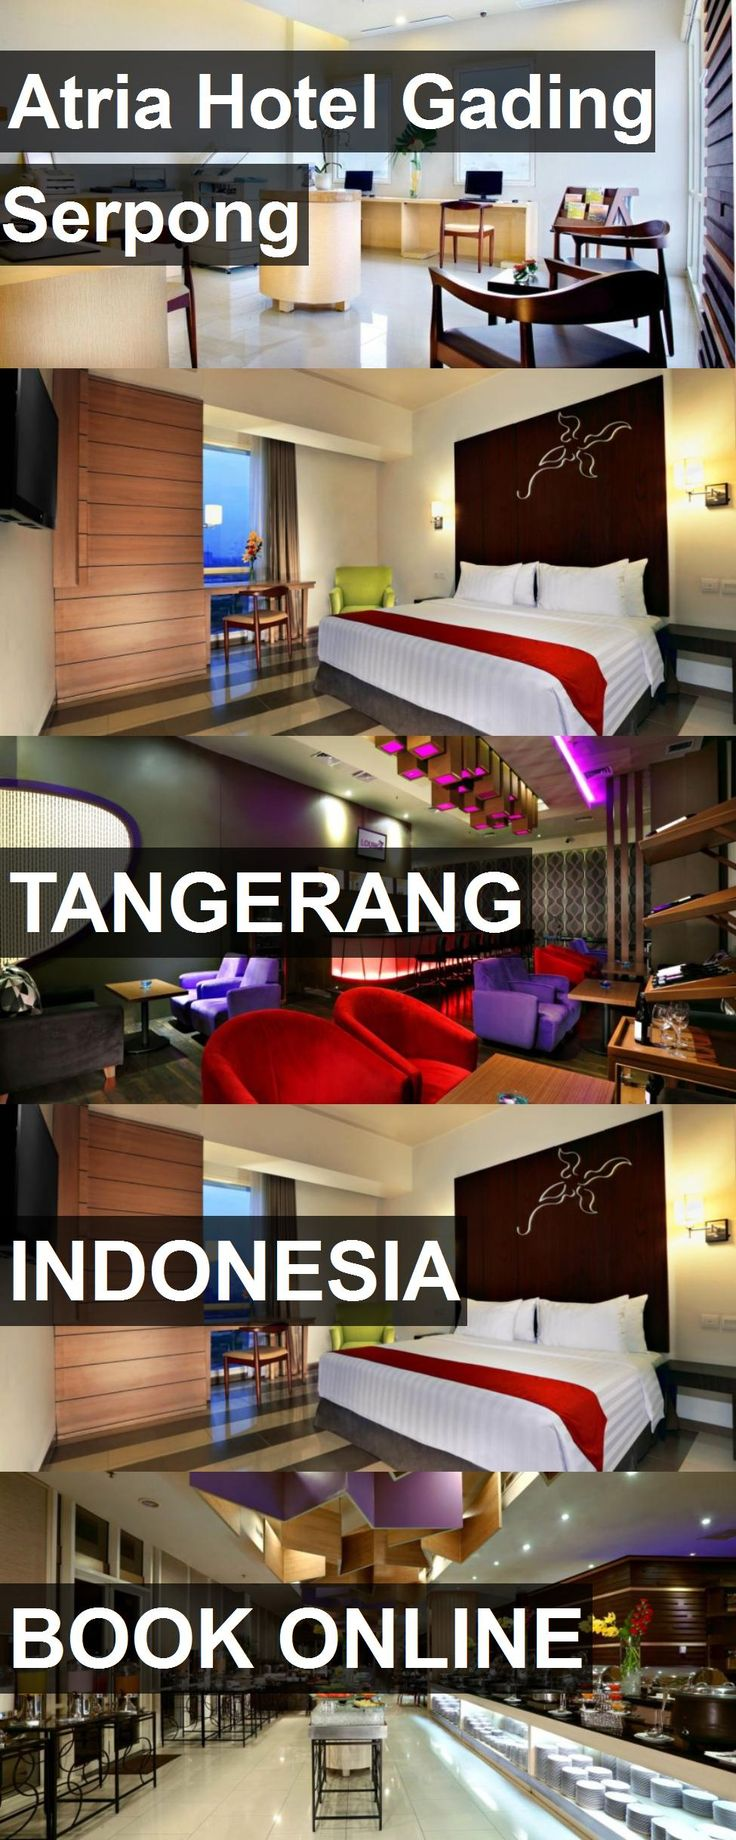 Atria Hotel Gading Serpong in Tangerang, Indonesia. For more information, photos, reviews and best prices please follow the link. #Indonesia #Tangerang #travel #vacation #hotel